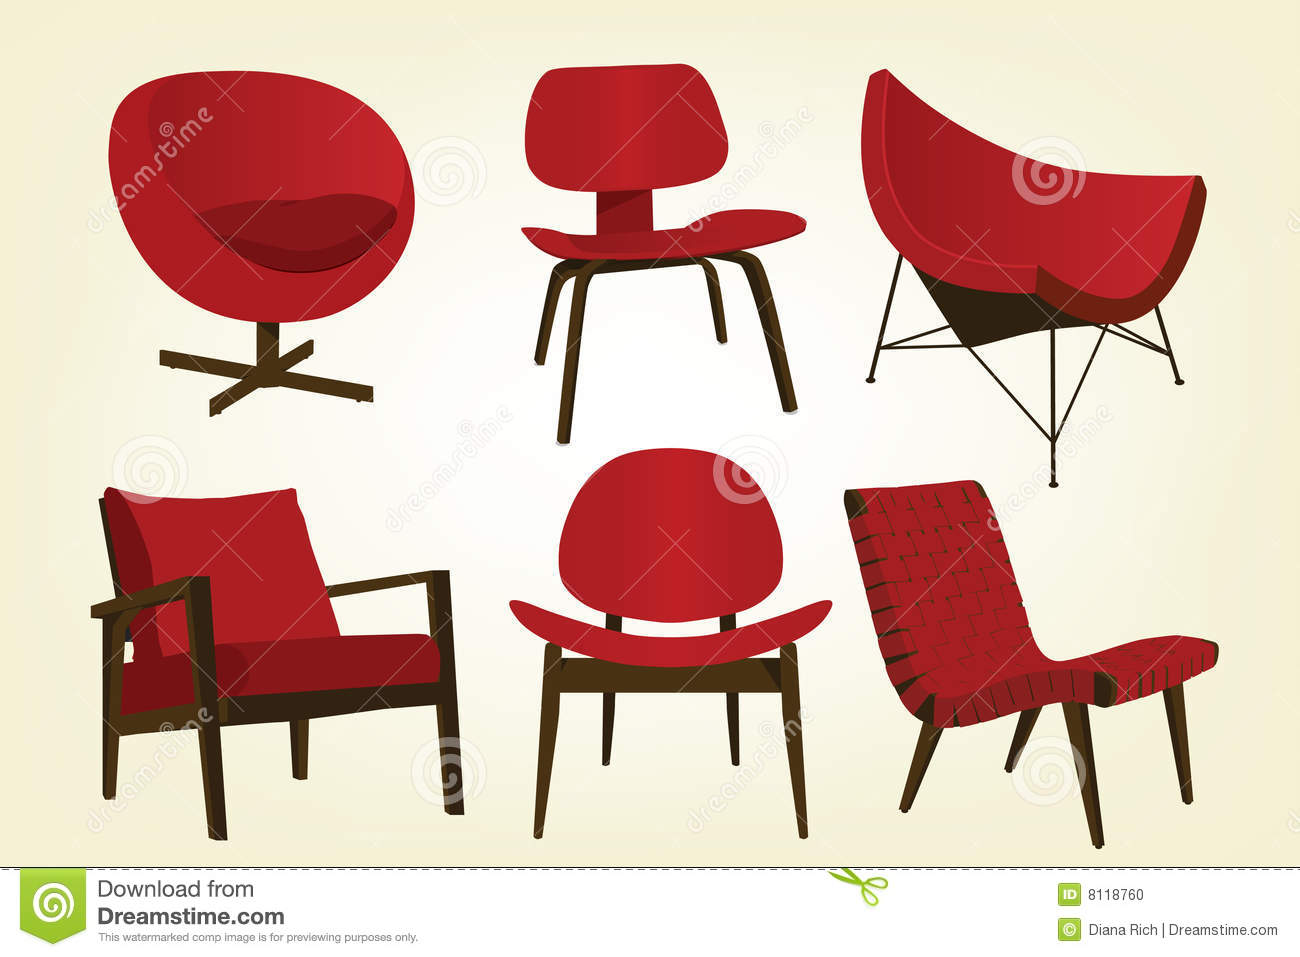 Superieur Vintage Red Chair Icons